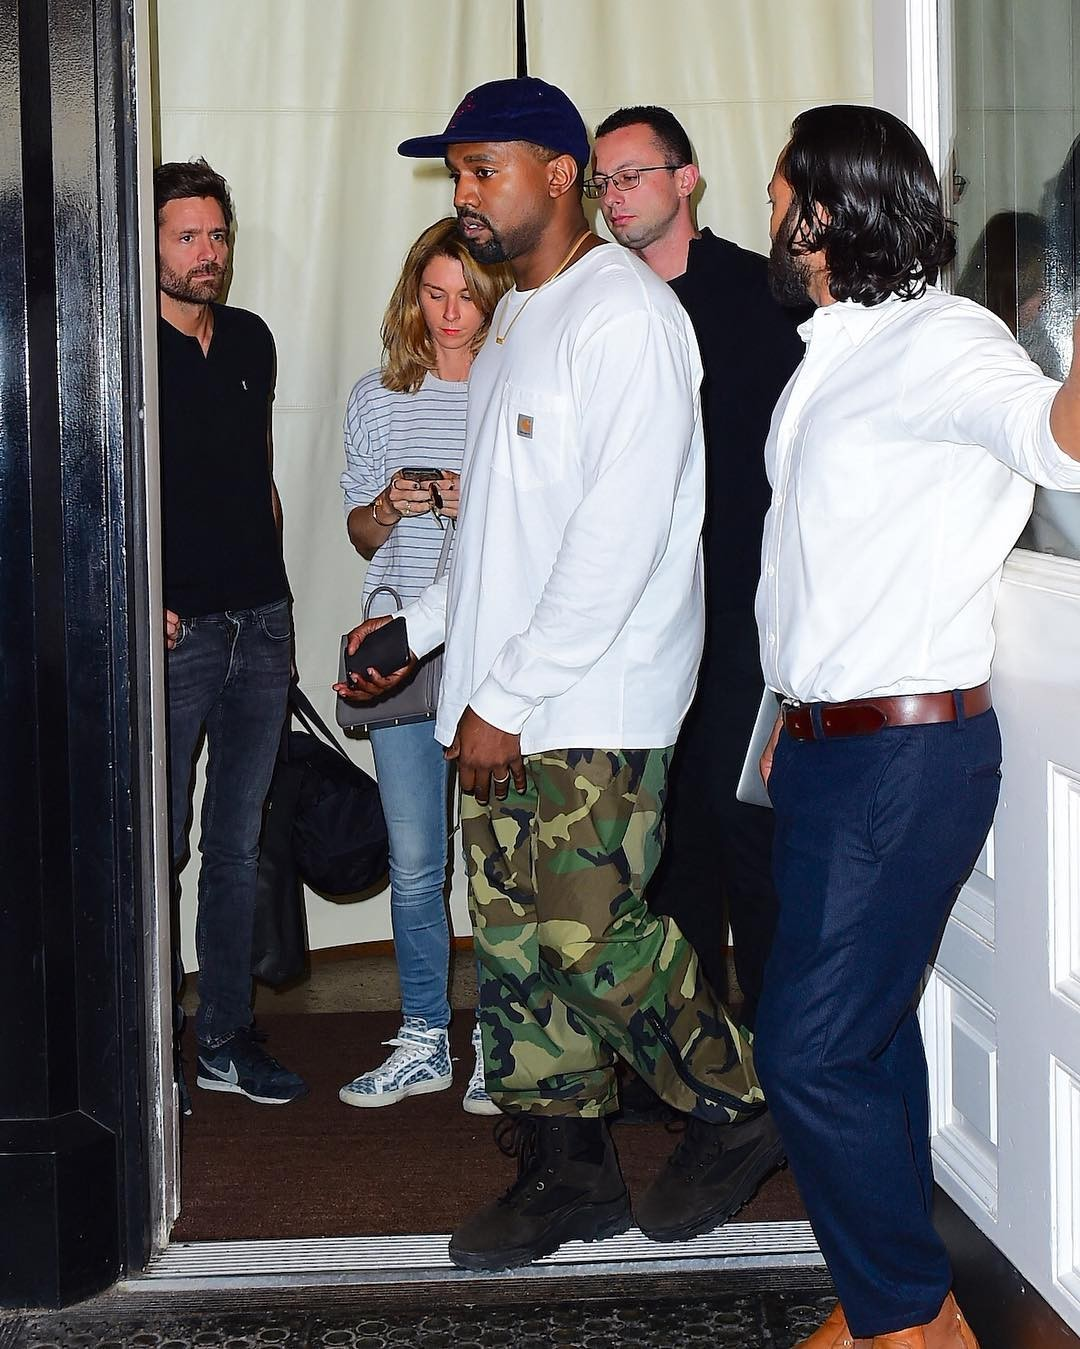 SPOTTED: Kanye West in Yeezy Boots And Carhartt